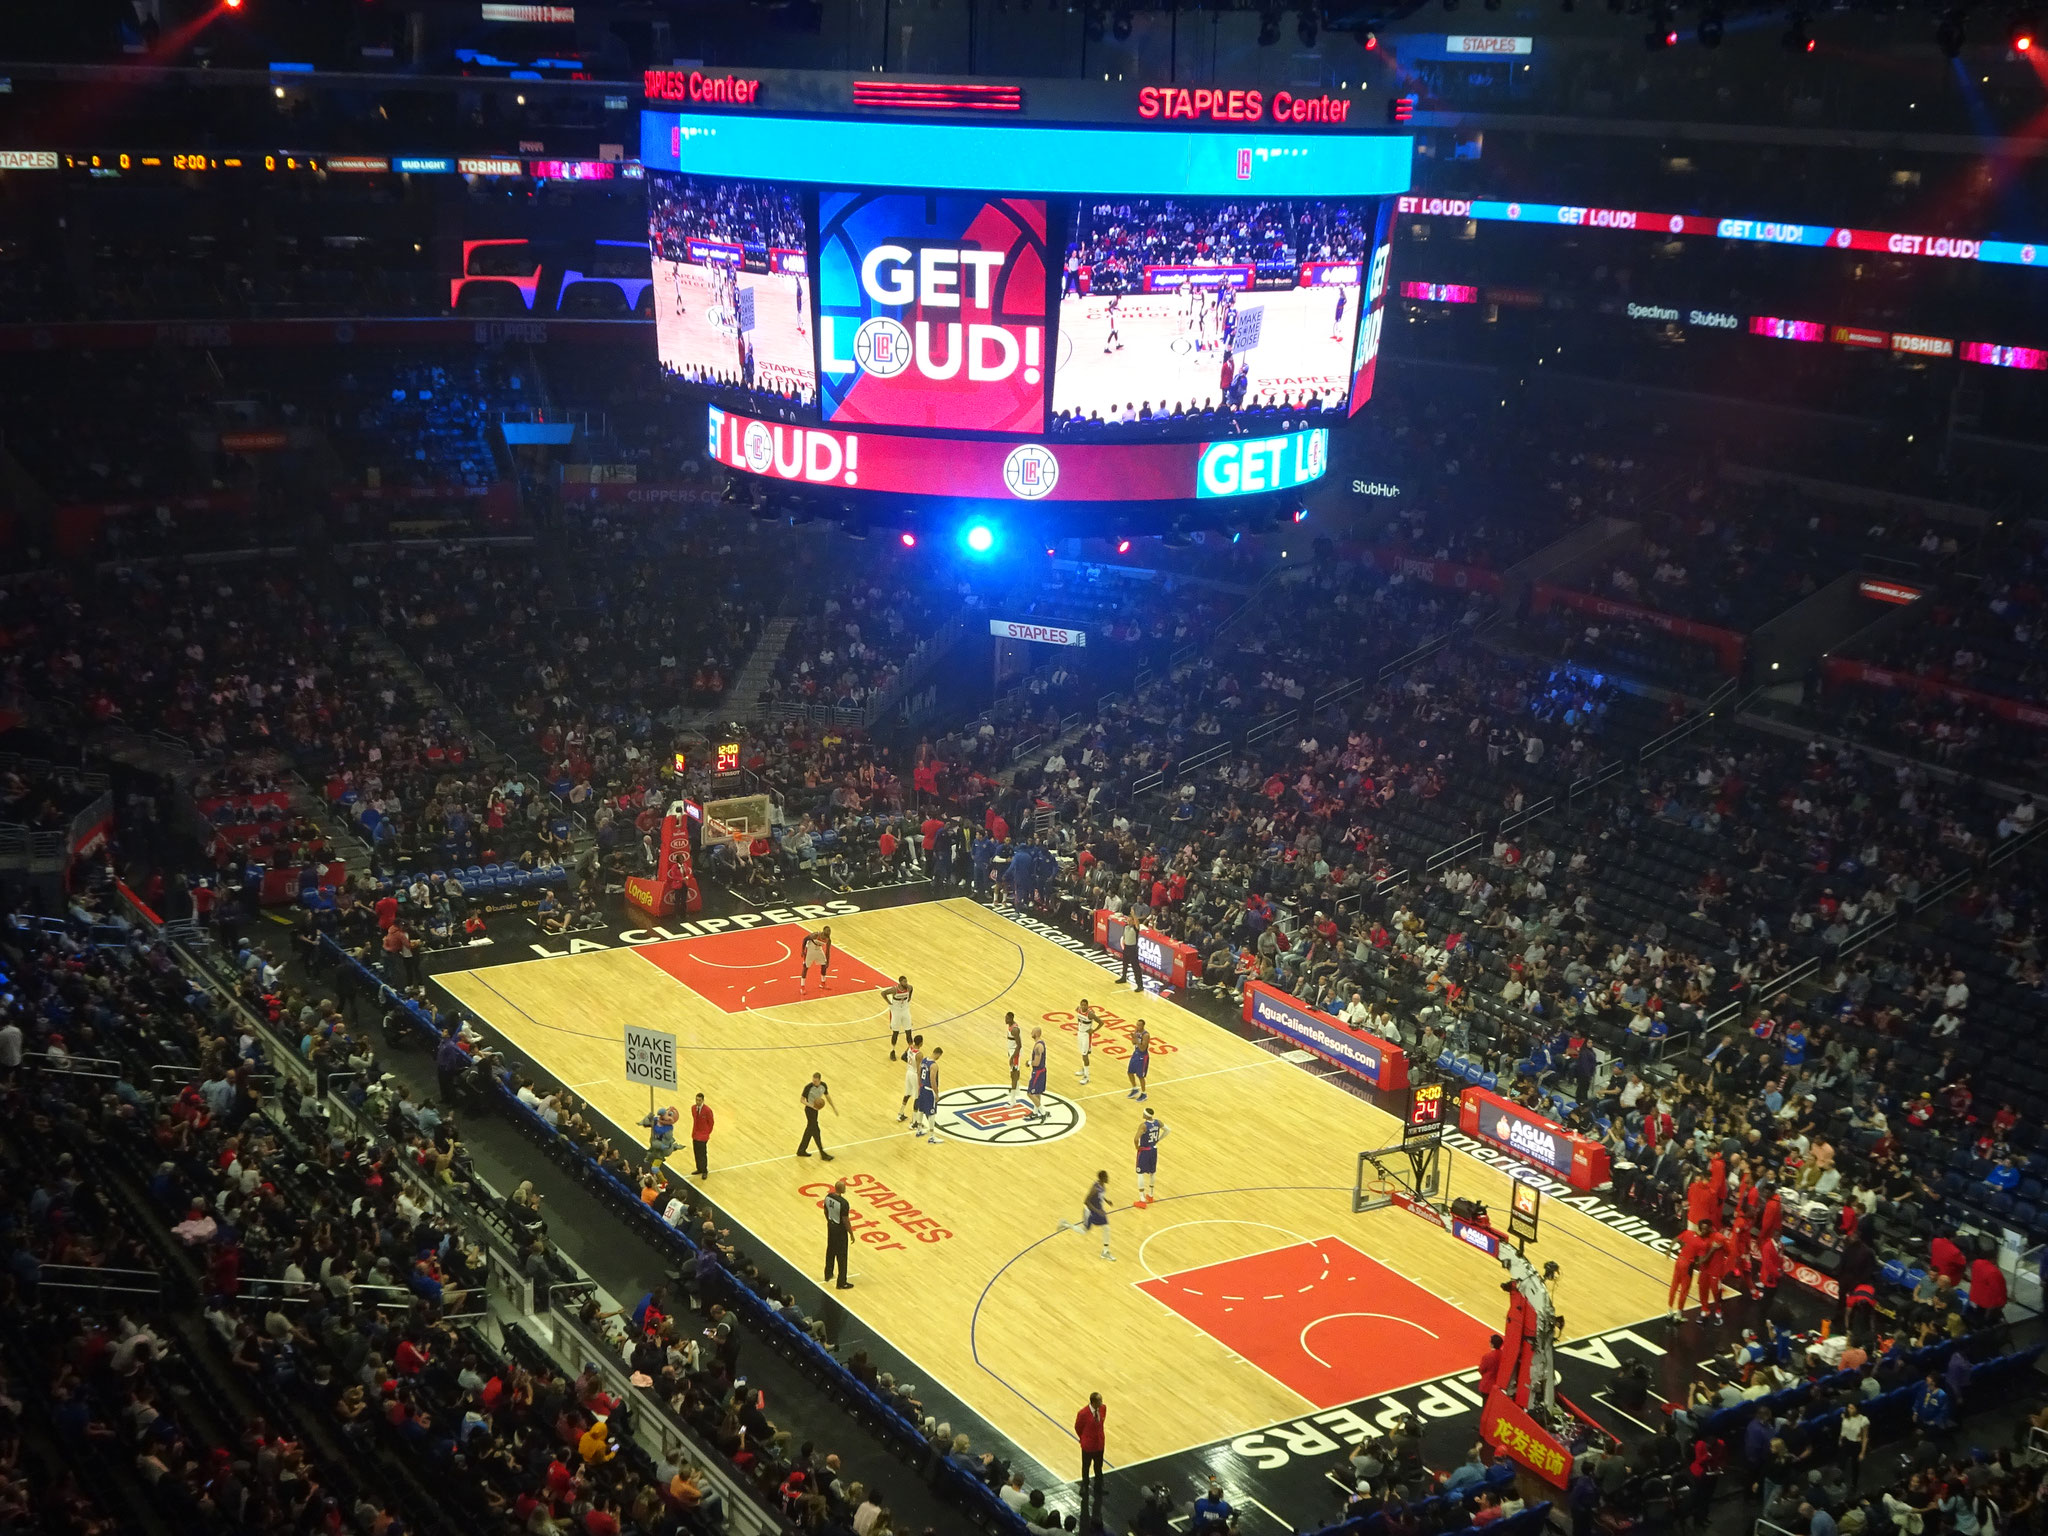 Los Angeles Clippers vs Washington Wizards (2018/19)